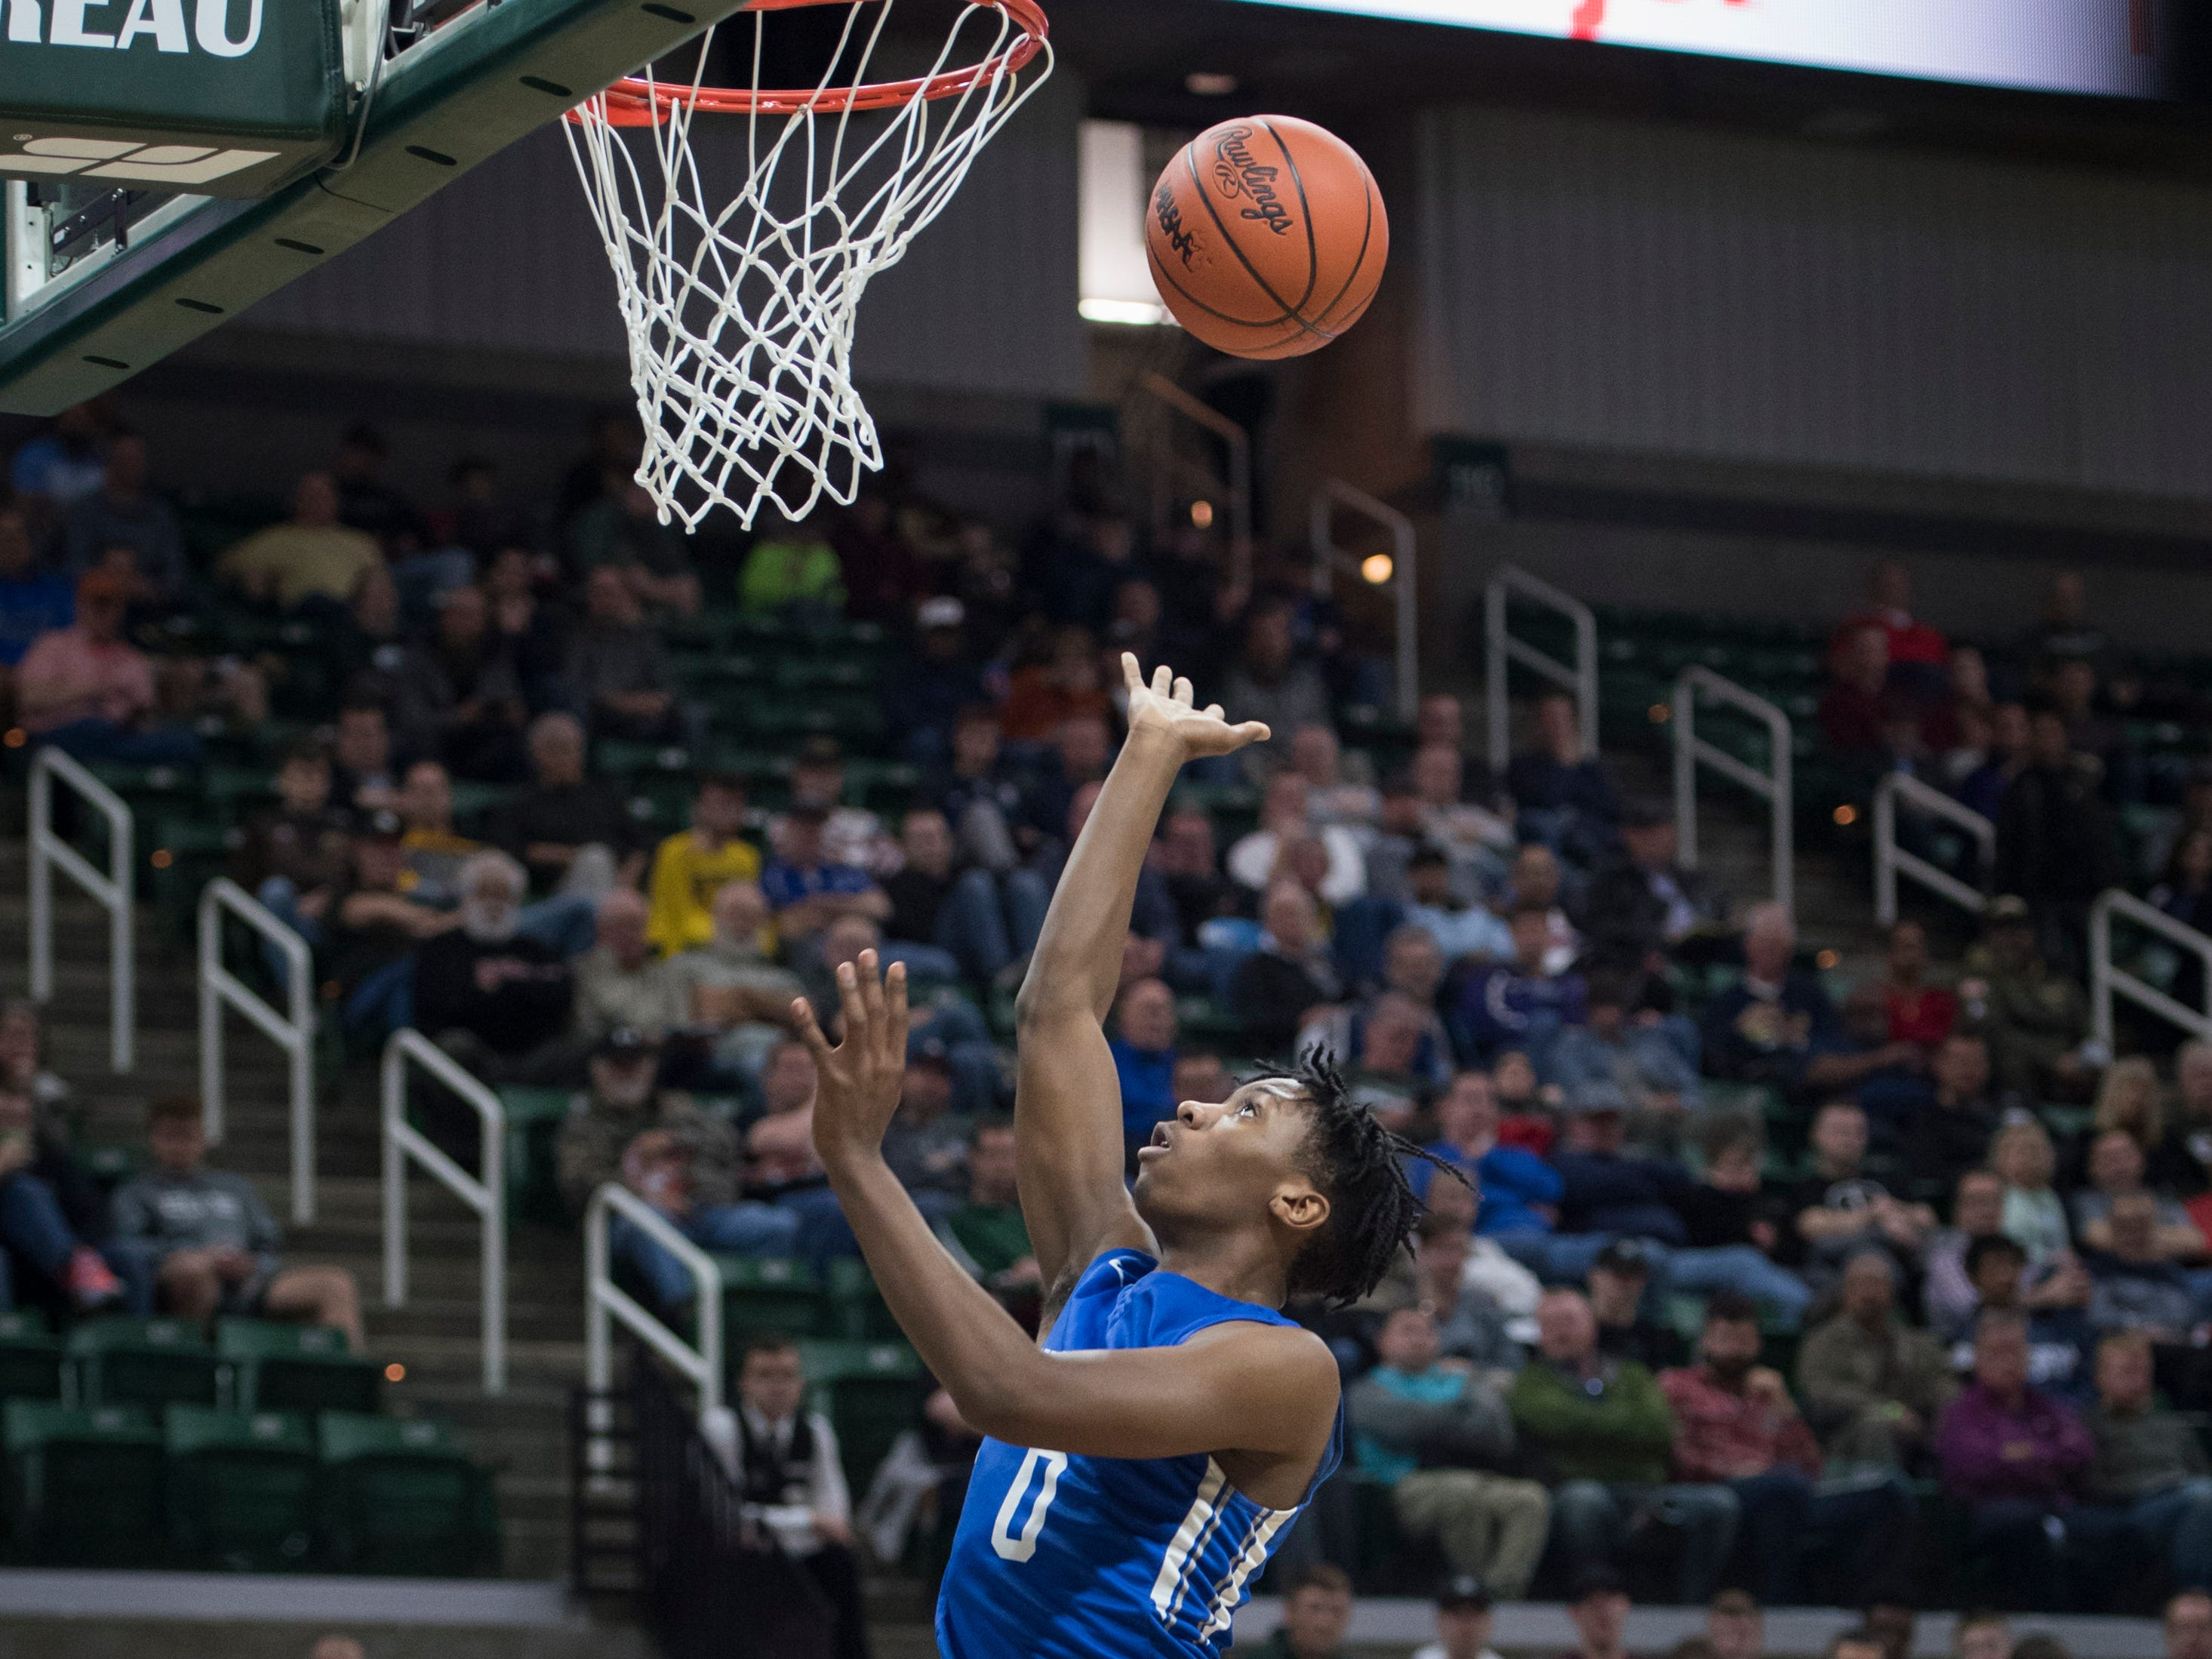 Southfield Christian's Rahmon Scruggs shoots a layup in the first half.